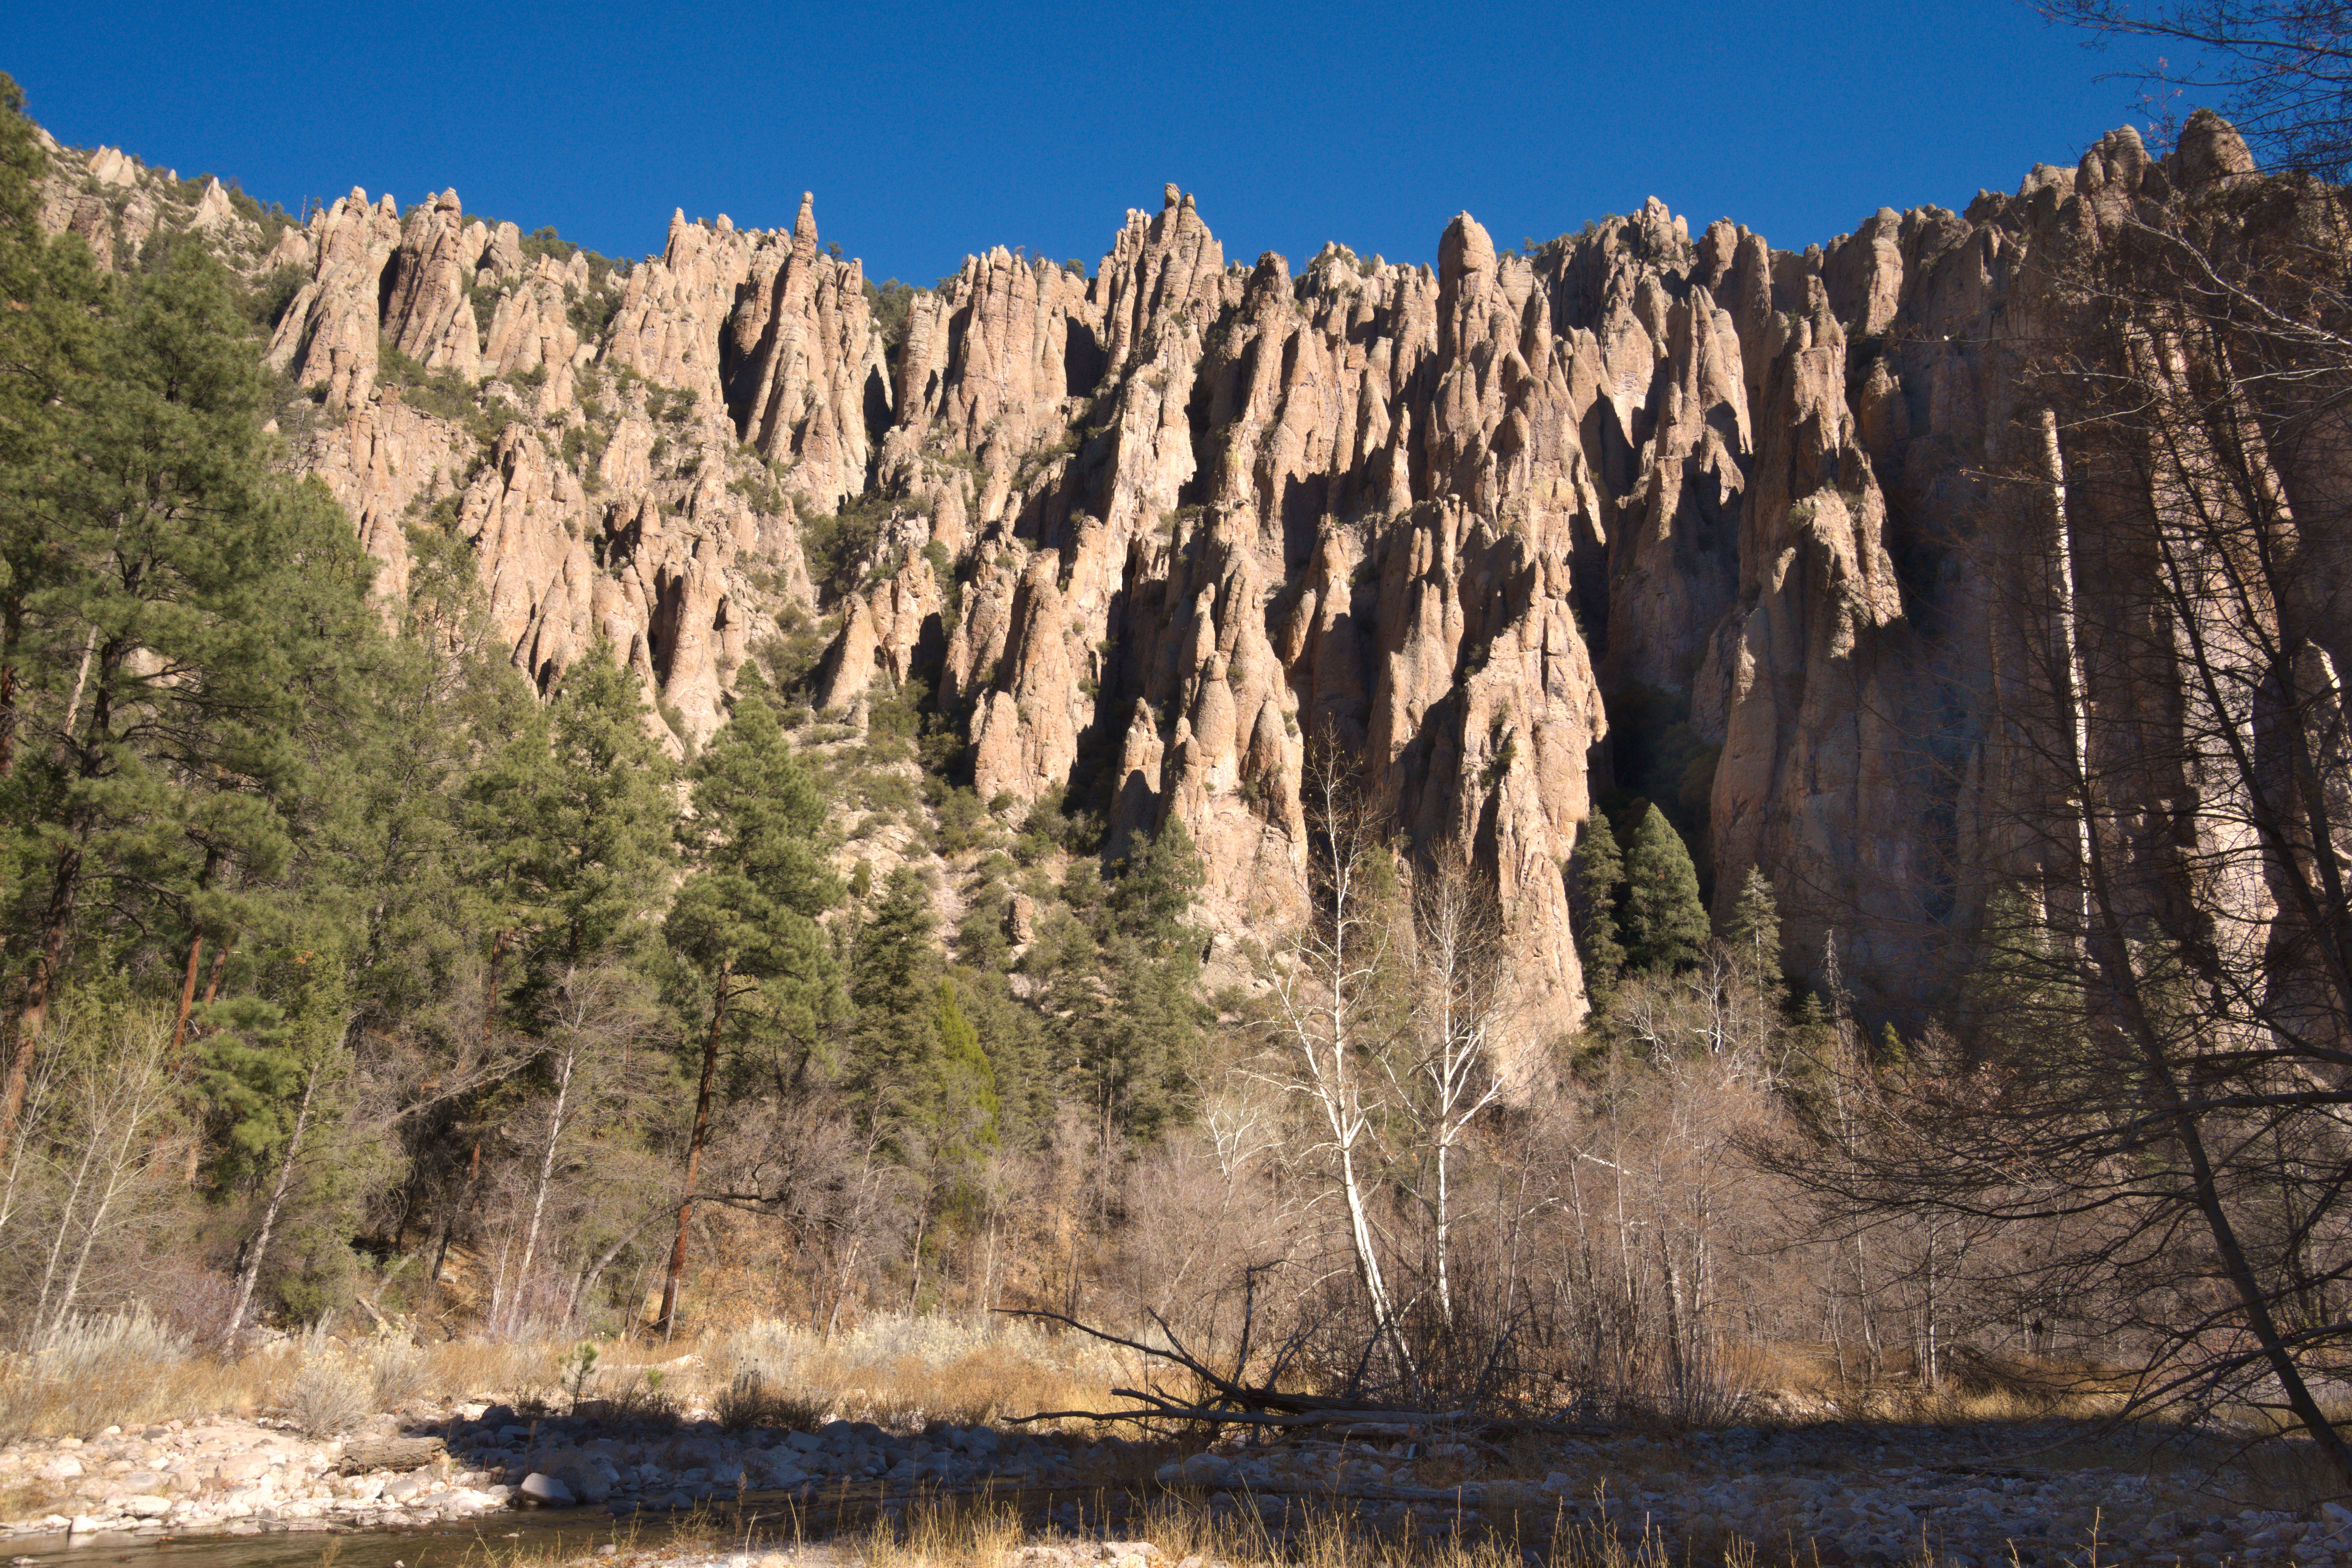 Teeth like rock spires on the West fork of the Gila River, New Mexico